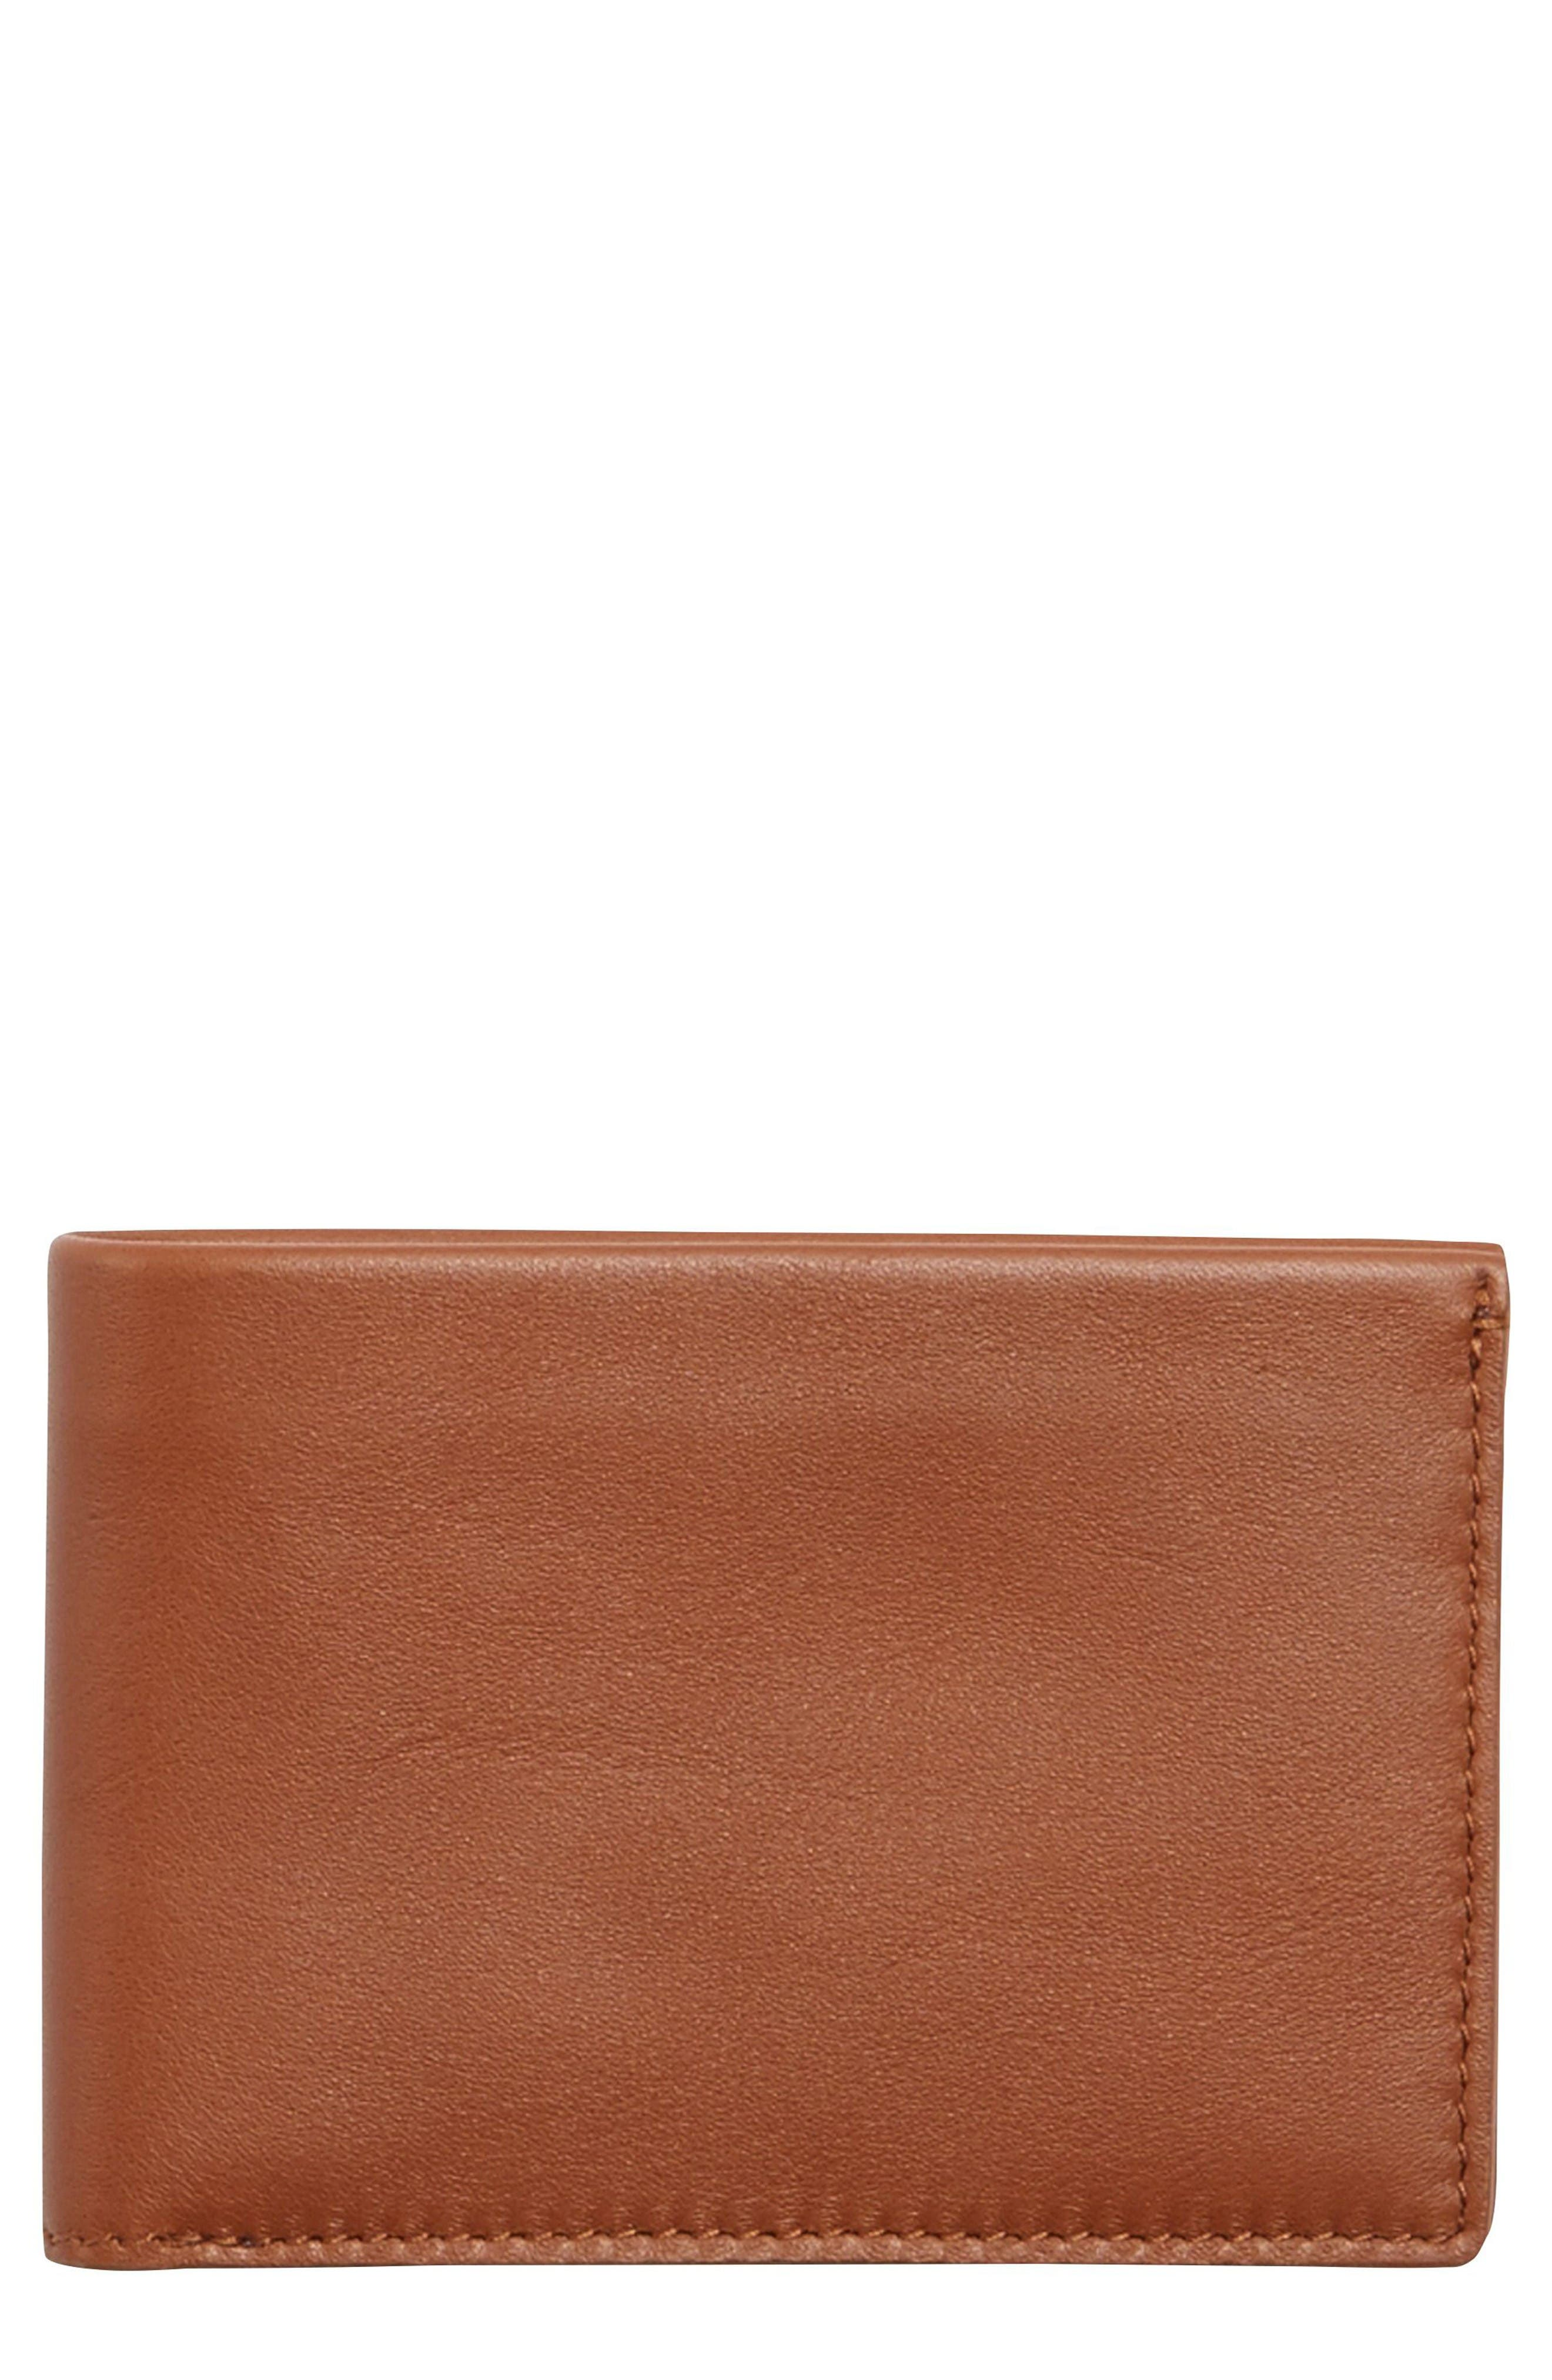 Main Image - Skagen Leather Wallet